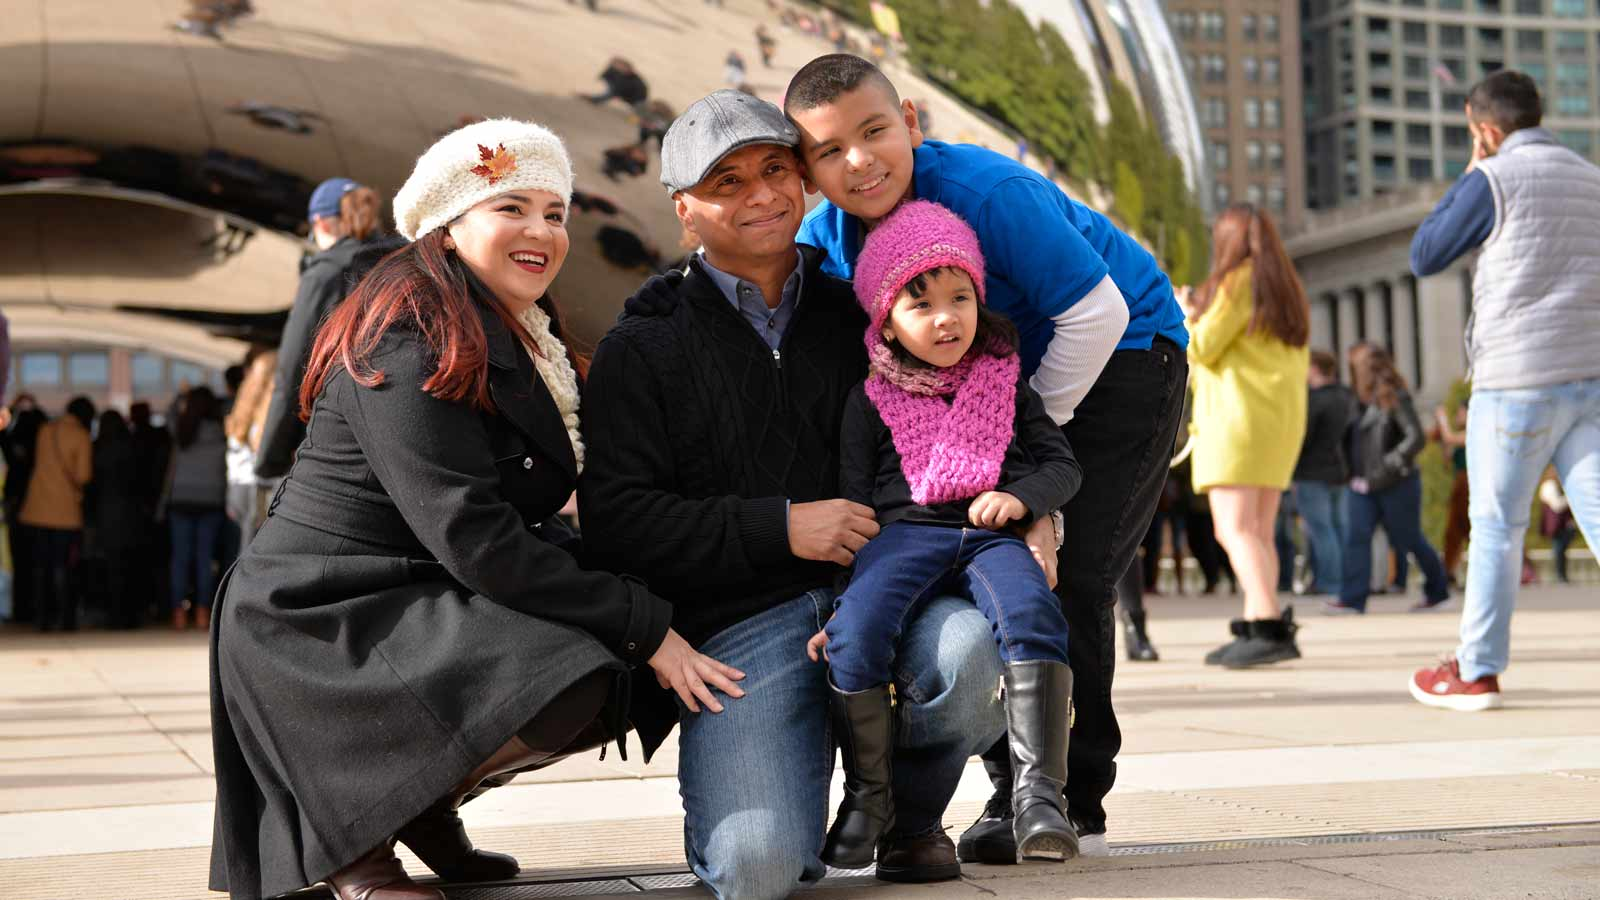 Hemophila A patient Jonathan Grisalez and family